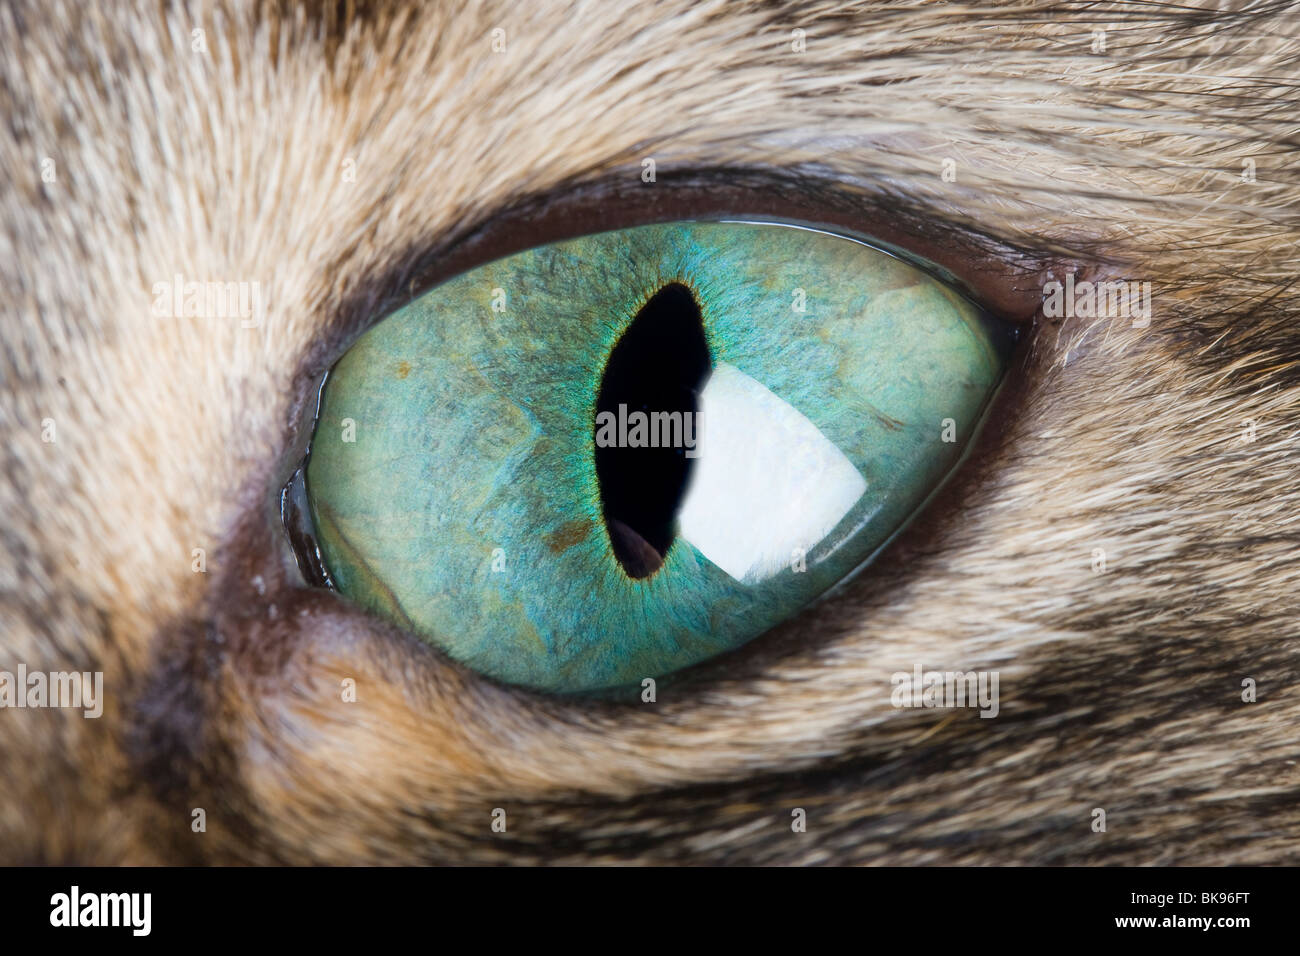 Cat Eye Macro. A close up of a cat's eye showing the vertical pupil and beautiful green iris. - Stock Image